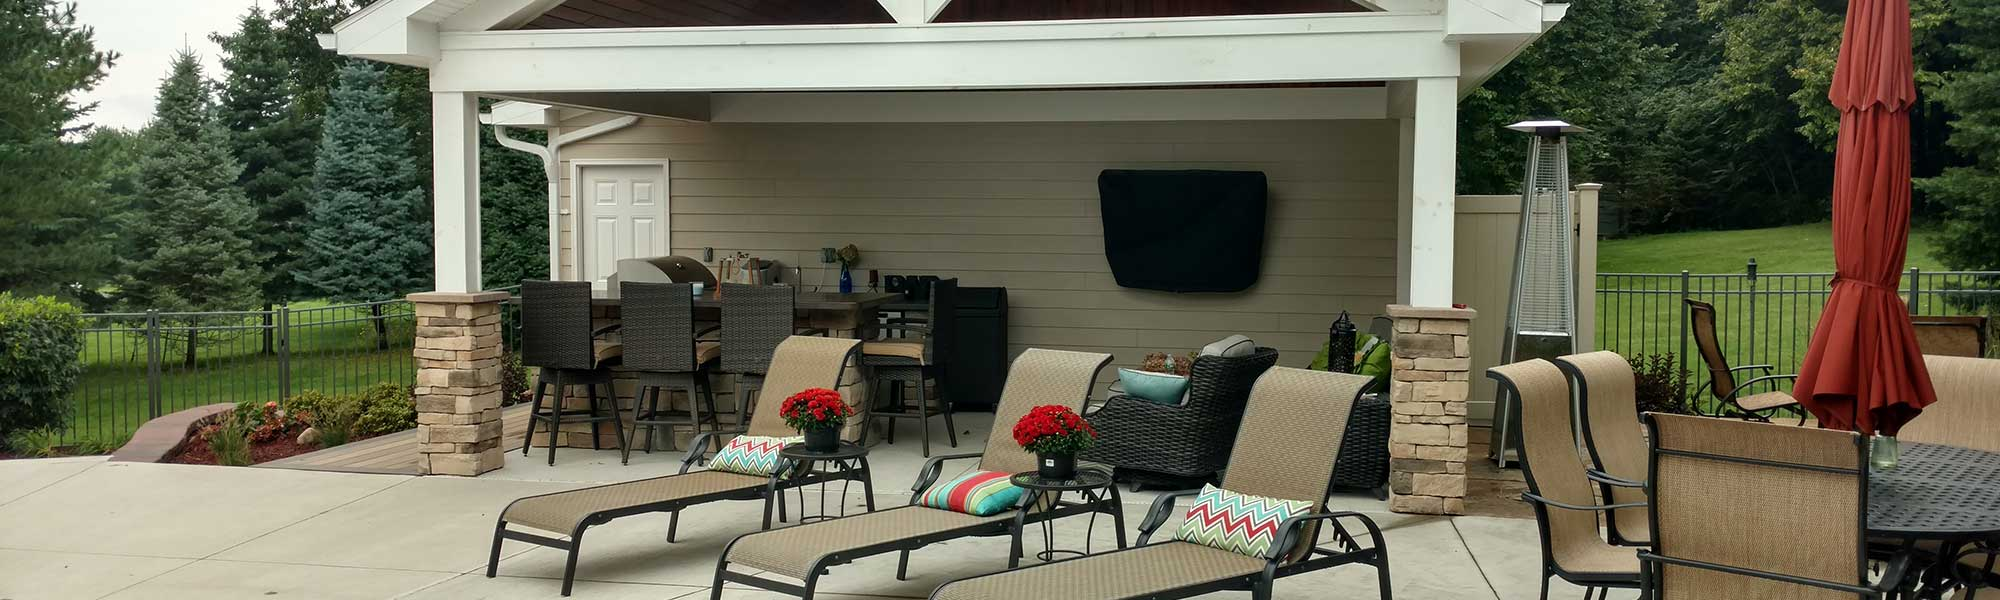 Outdoor living space hardscape and landscaping by Graf's Lawn & Landscaping LLC